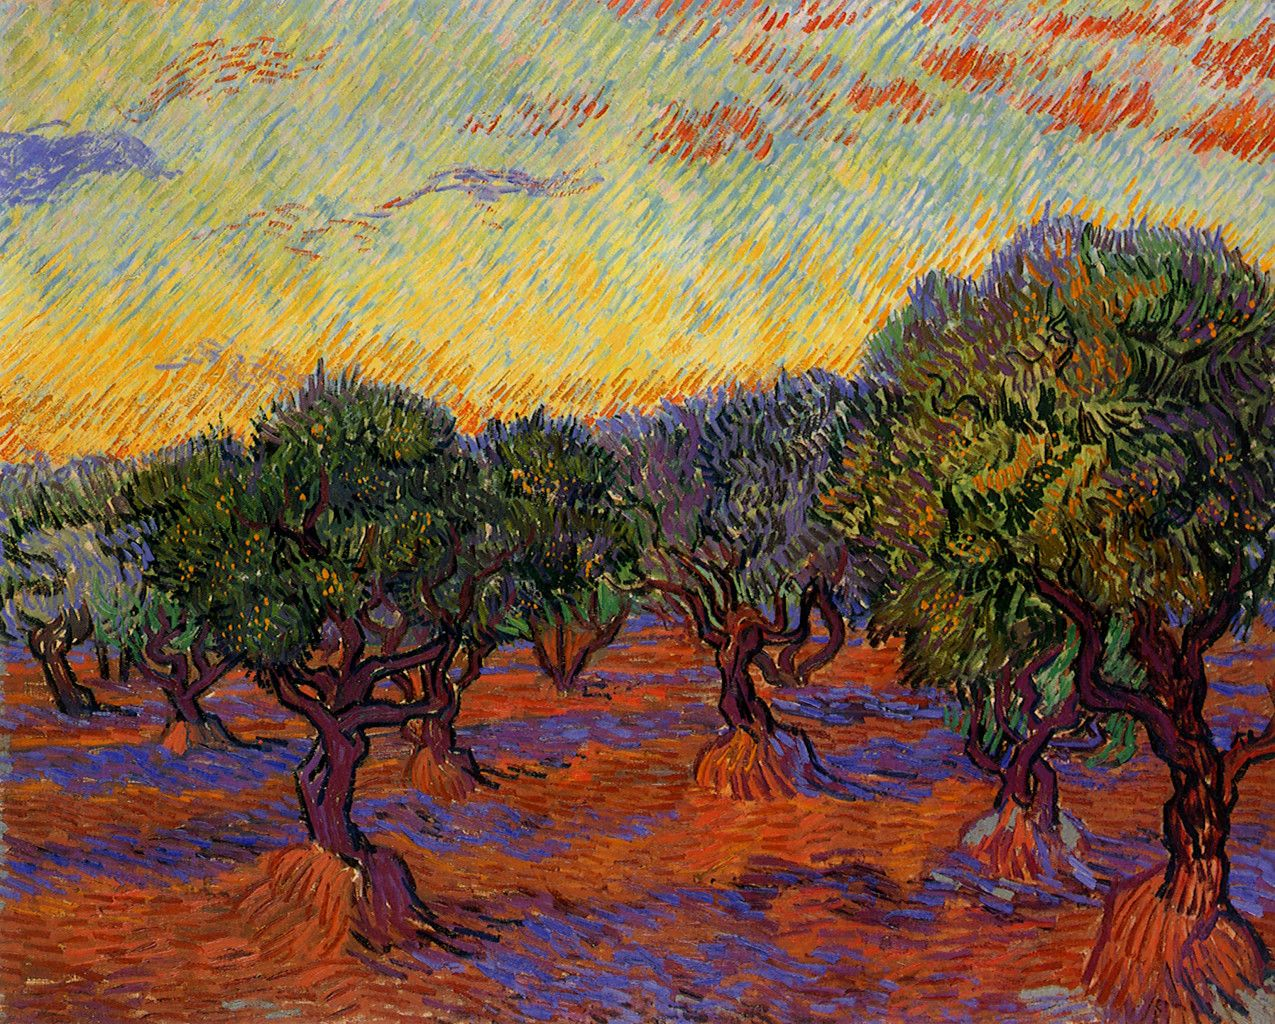 """vincent van goghs the olive trees The cypress trees in """"the starry night"""": a symbolic self-portrait of vincent van gogh jessica caldarone principles of research/arh 498-001."""